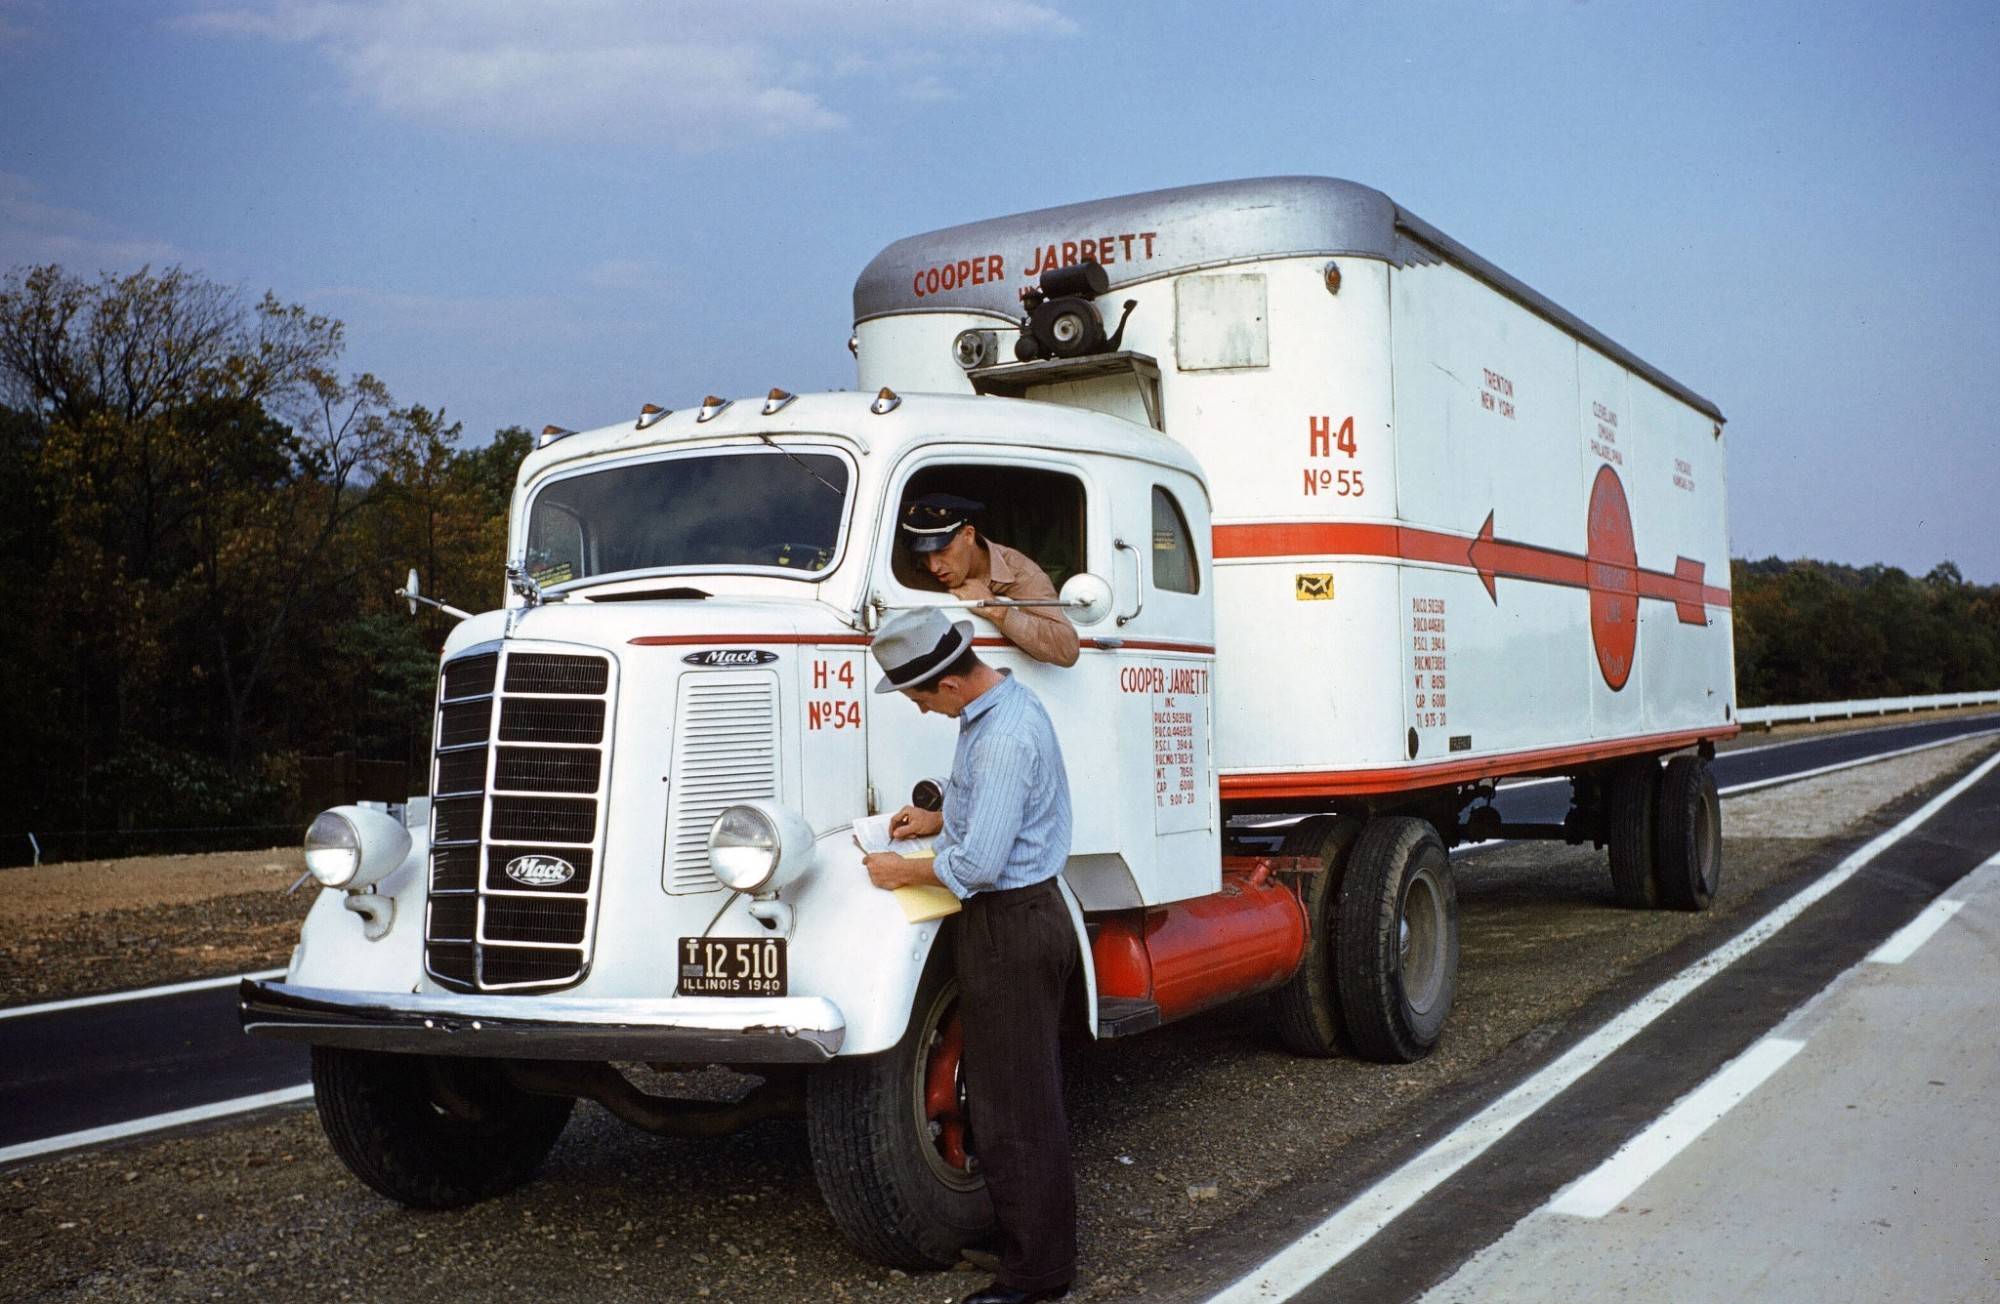 1940 A view of a truck driver, parking a Mack Truck alongside the interstate for Cooper Jarrett Motor Freight Lines in Illinois. (Photo by Ivan Dmitri